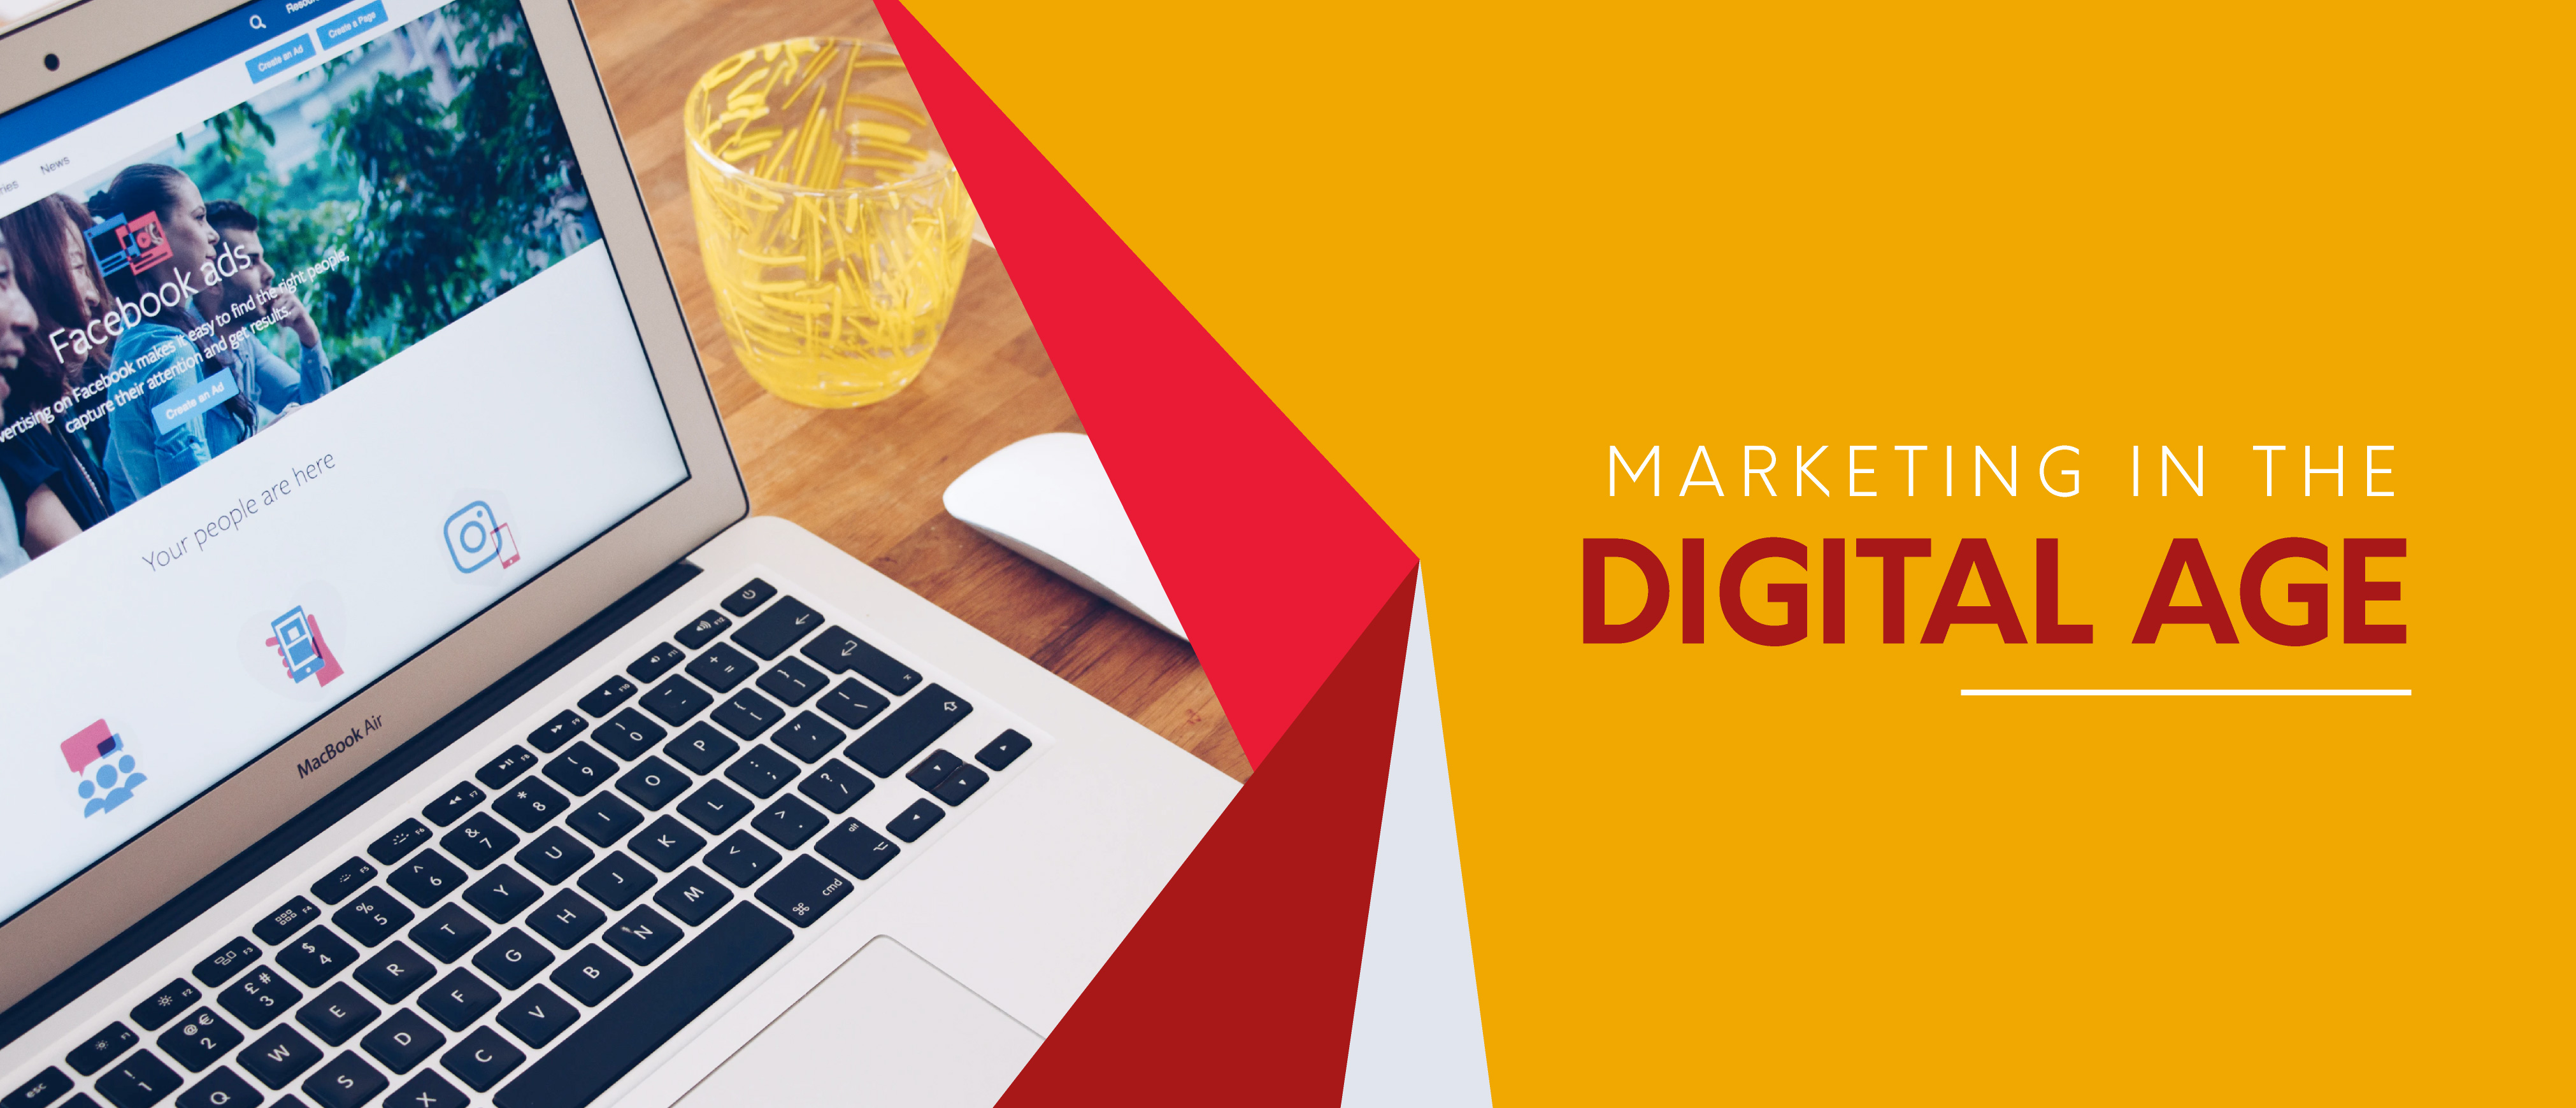 Marketing-in-the-digital-age-banner_v1